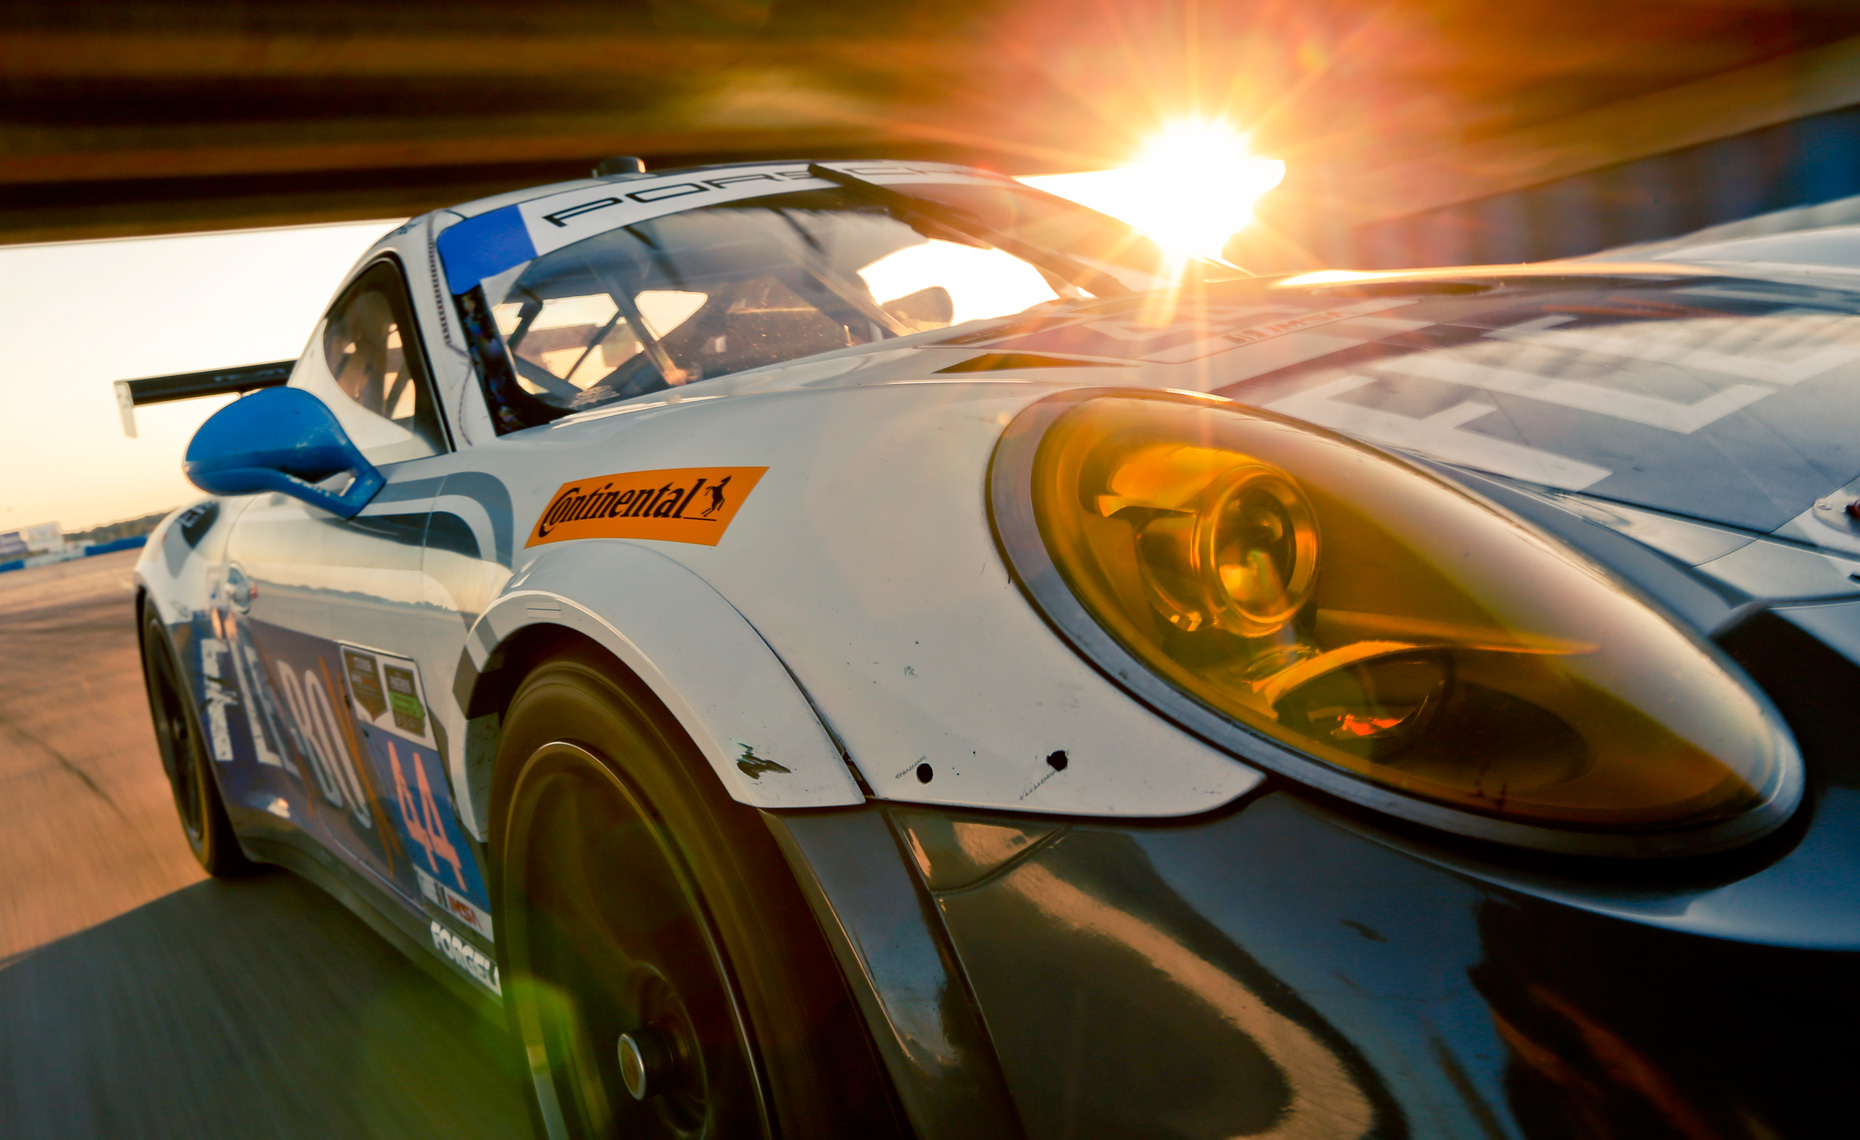 Winter Test 2014 at Sebring for the TUDOR United Sportscar Championship, February 20-21, 2014 at Sebring Florida